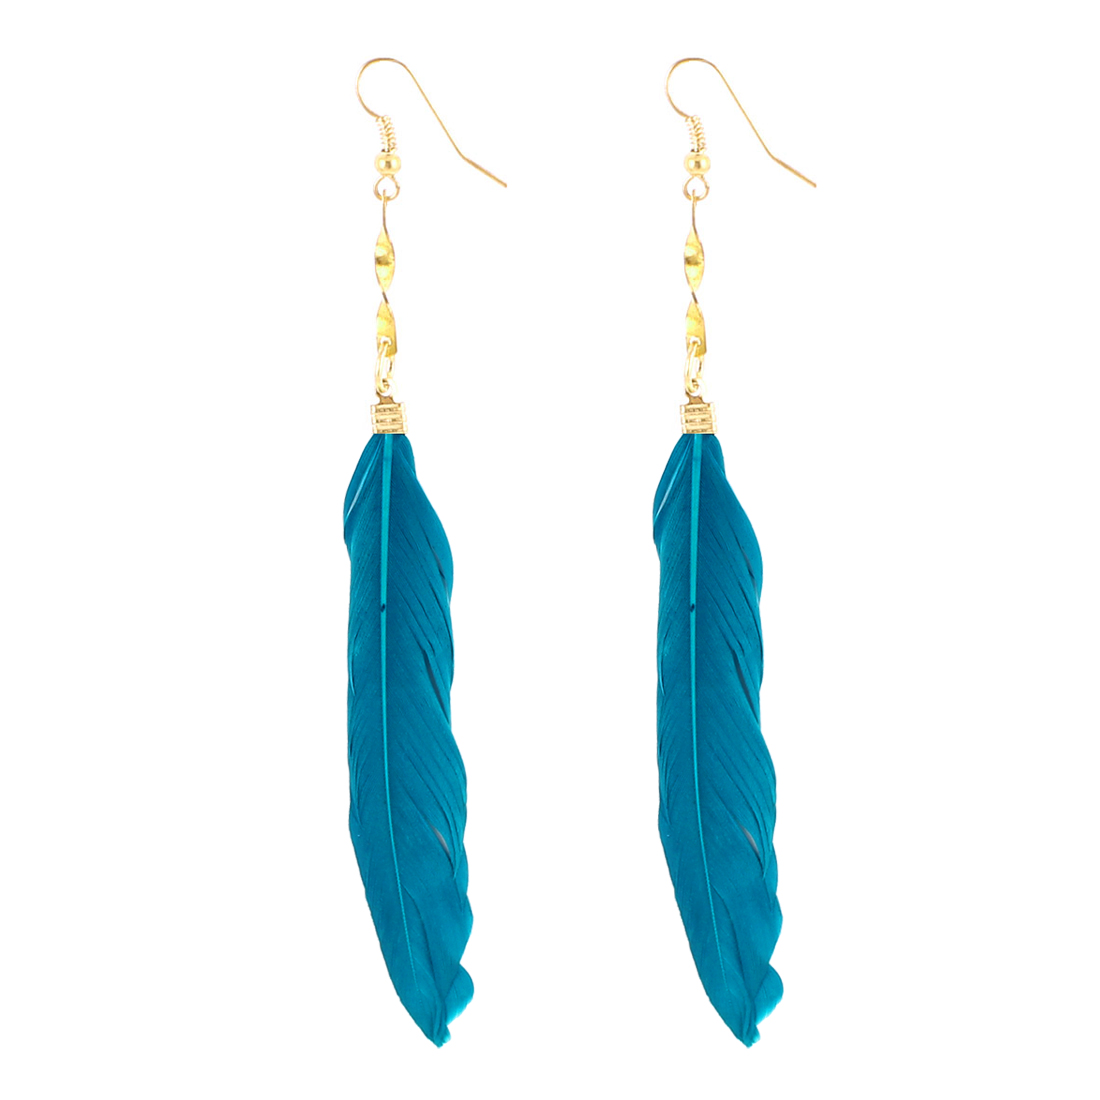 Lady Faux Feather Pendant Fish Hook Dangle Earrings Eardrop 2 Pcs Blue